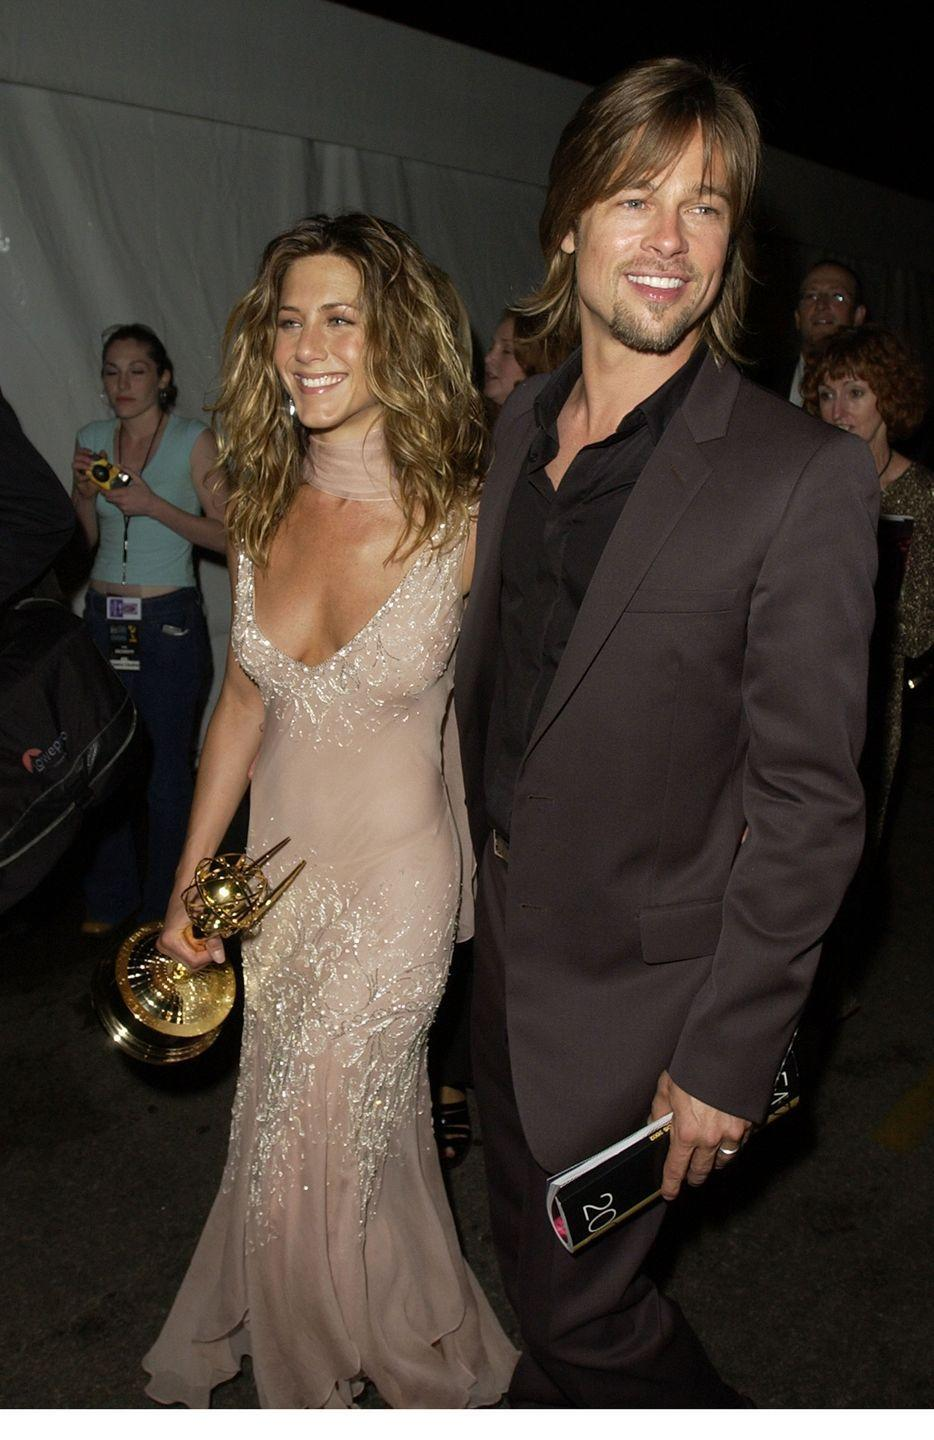 <p>It was all smiles for Pitt and Aniston at the 54th Primetime Emmy Awards, where Aniston won the award for Best Lead Actress in a Comedy Series. </p>